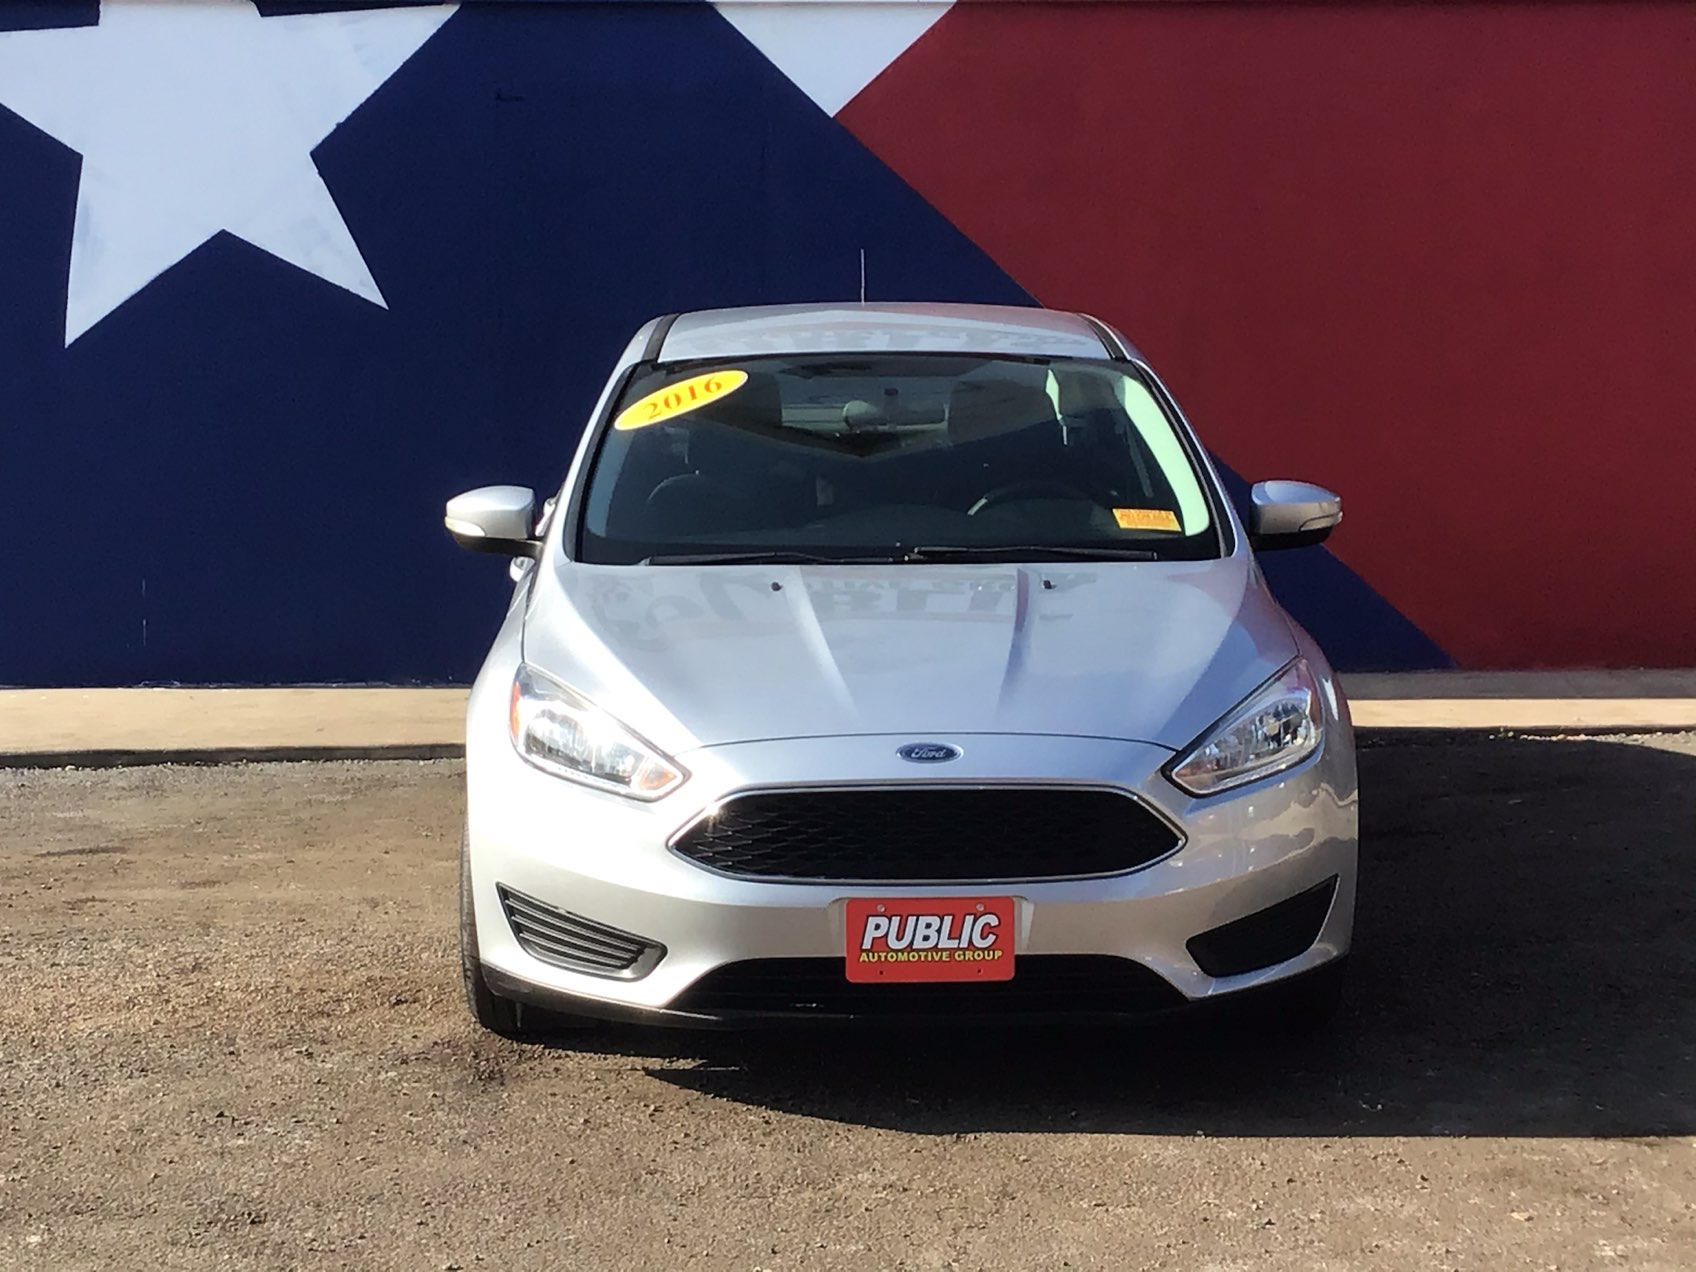 used vehicle - Sedan FORD FOCUS 2016